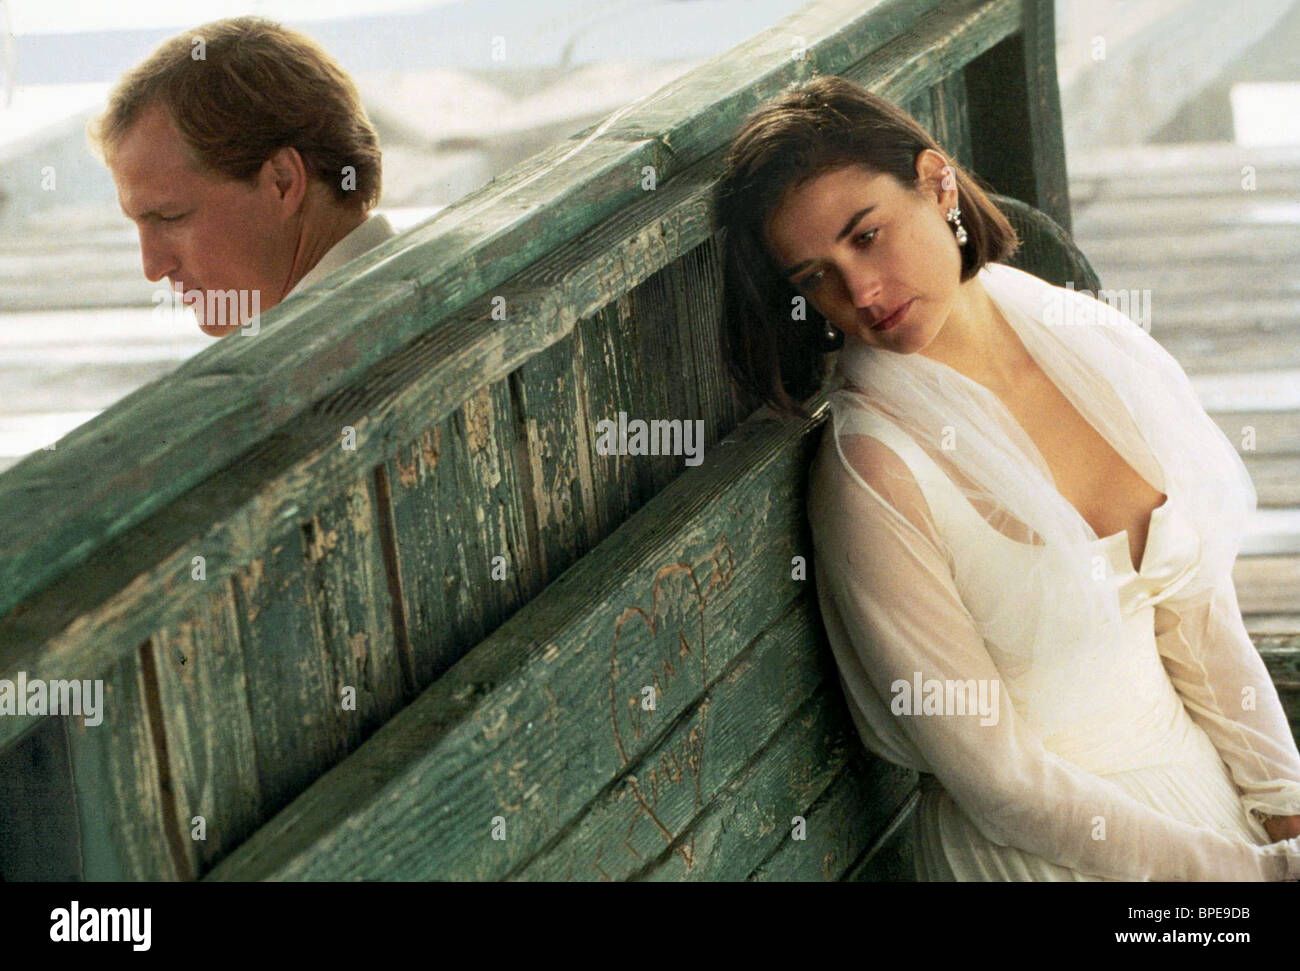 WOODY HARRELSON, DEMI MOORE, INDECENT PROPOSAL, 1993 - Stock Image